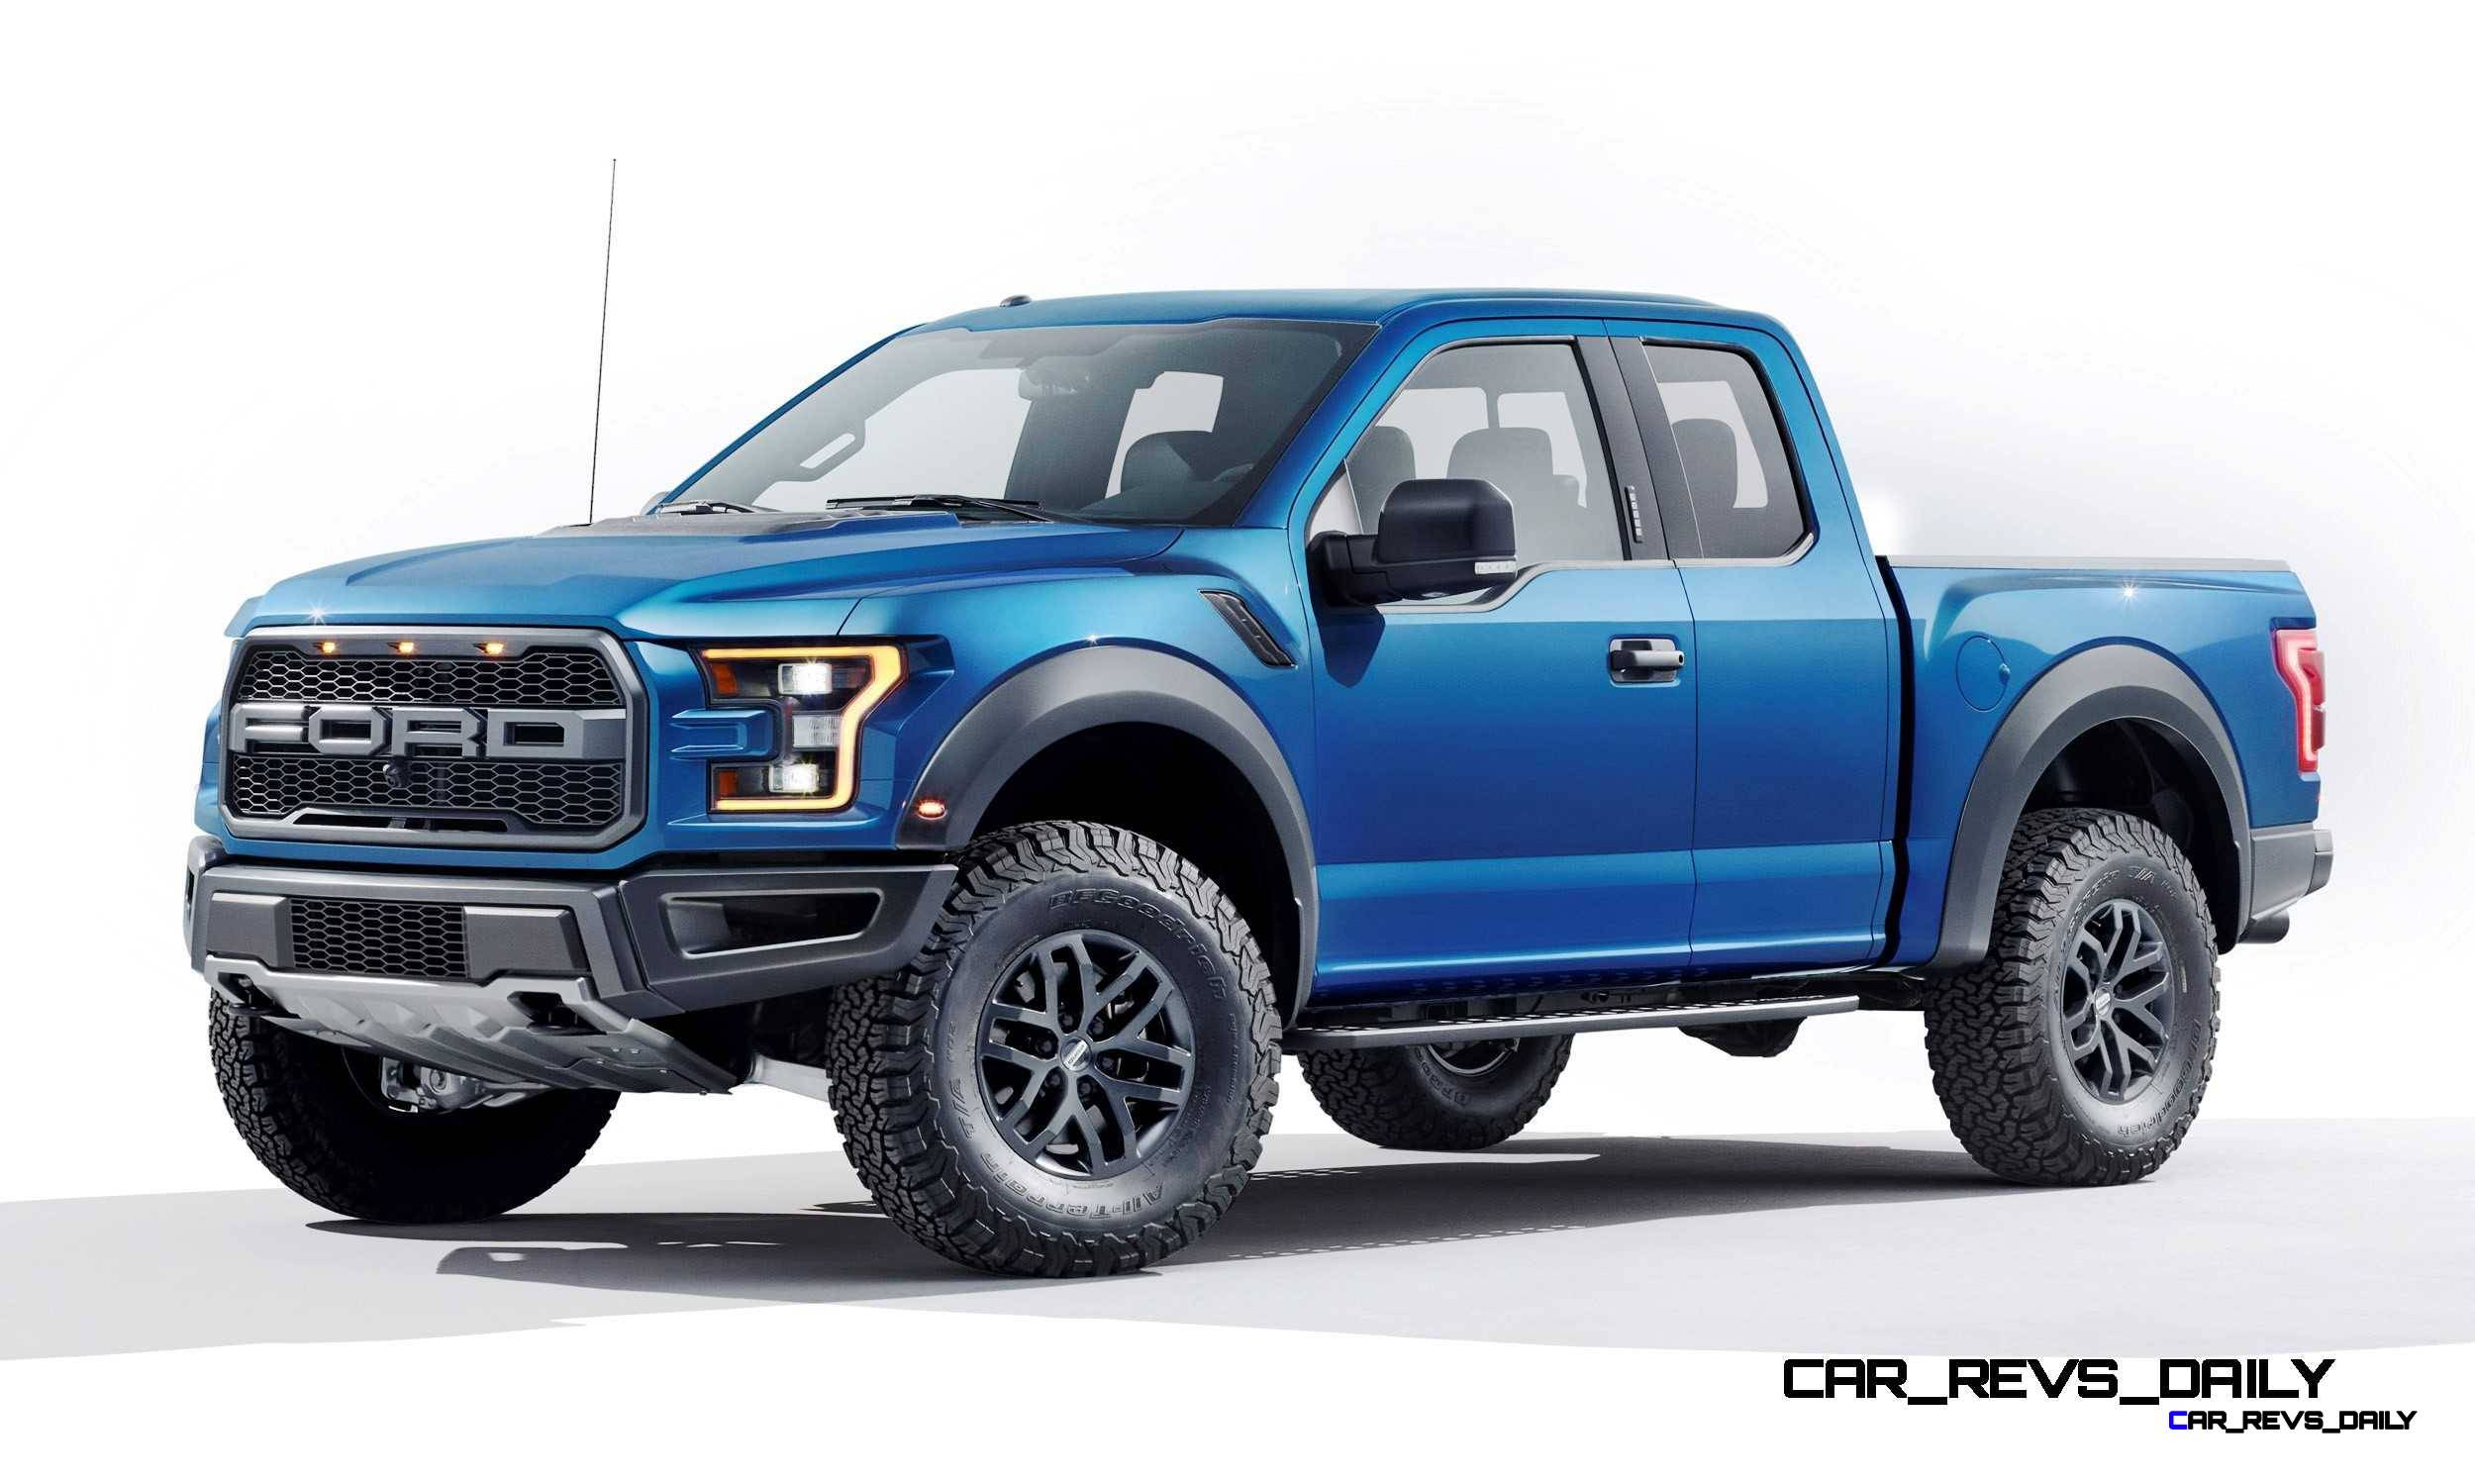 2017 ford raptor. Black Bedroom Furniture Sets. Home Design Ideas